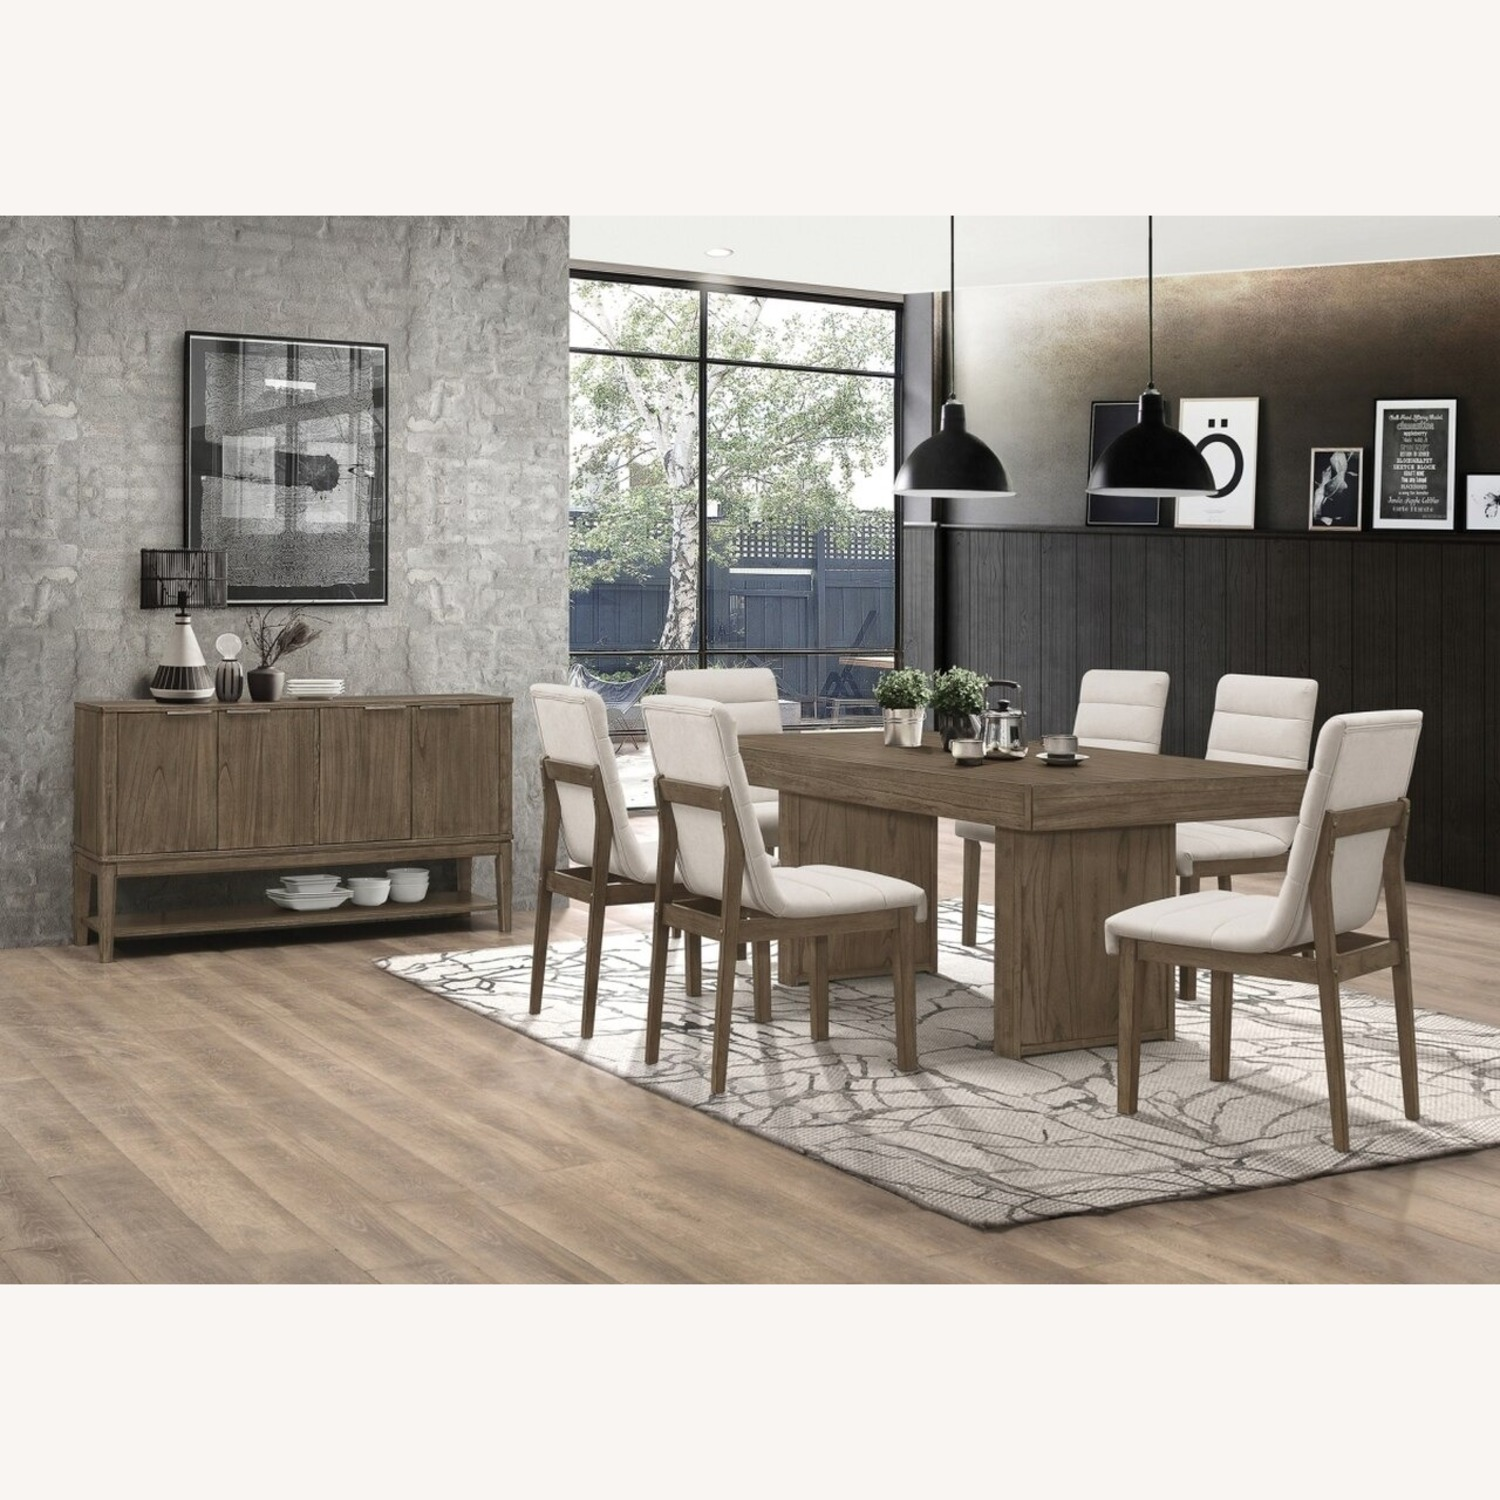 Contemporary Server In Wheat Brown Solid Hardwood - image-3